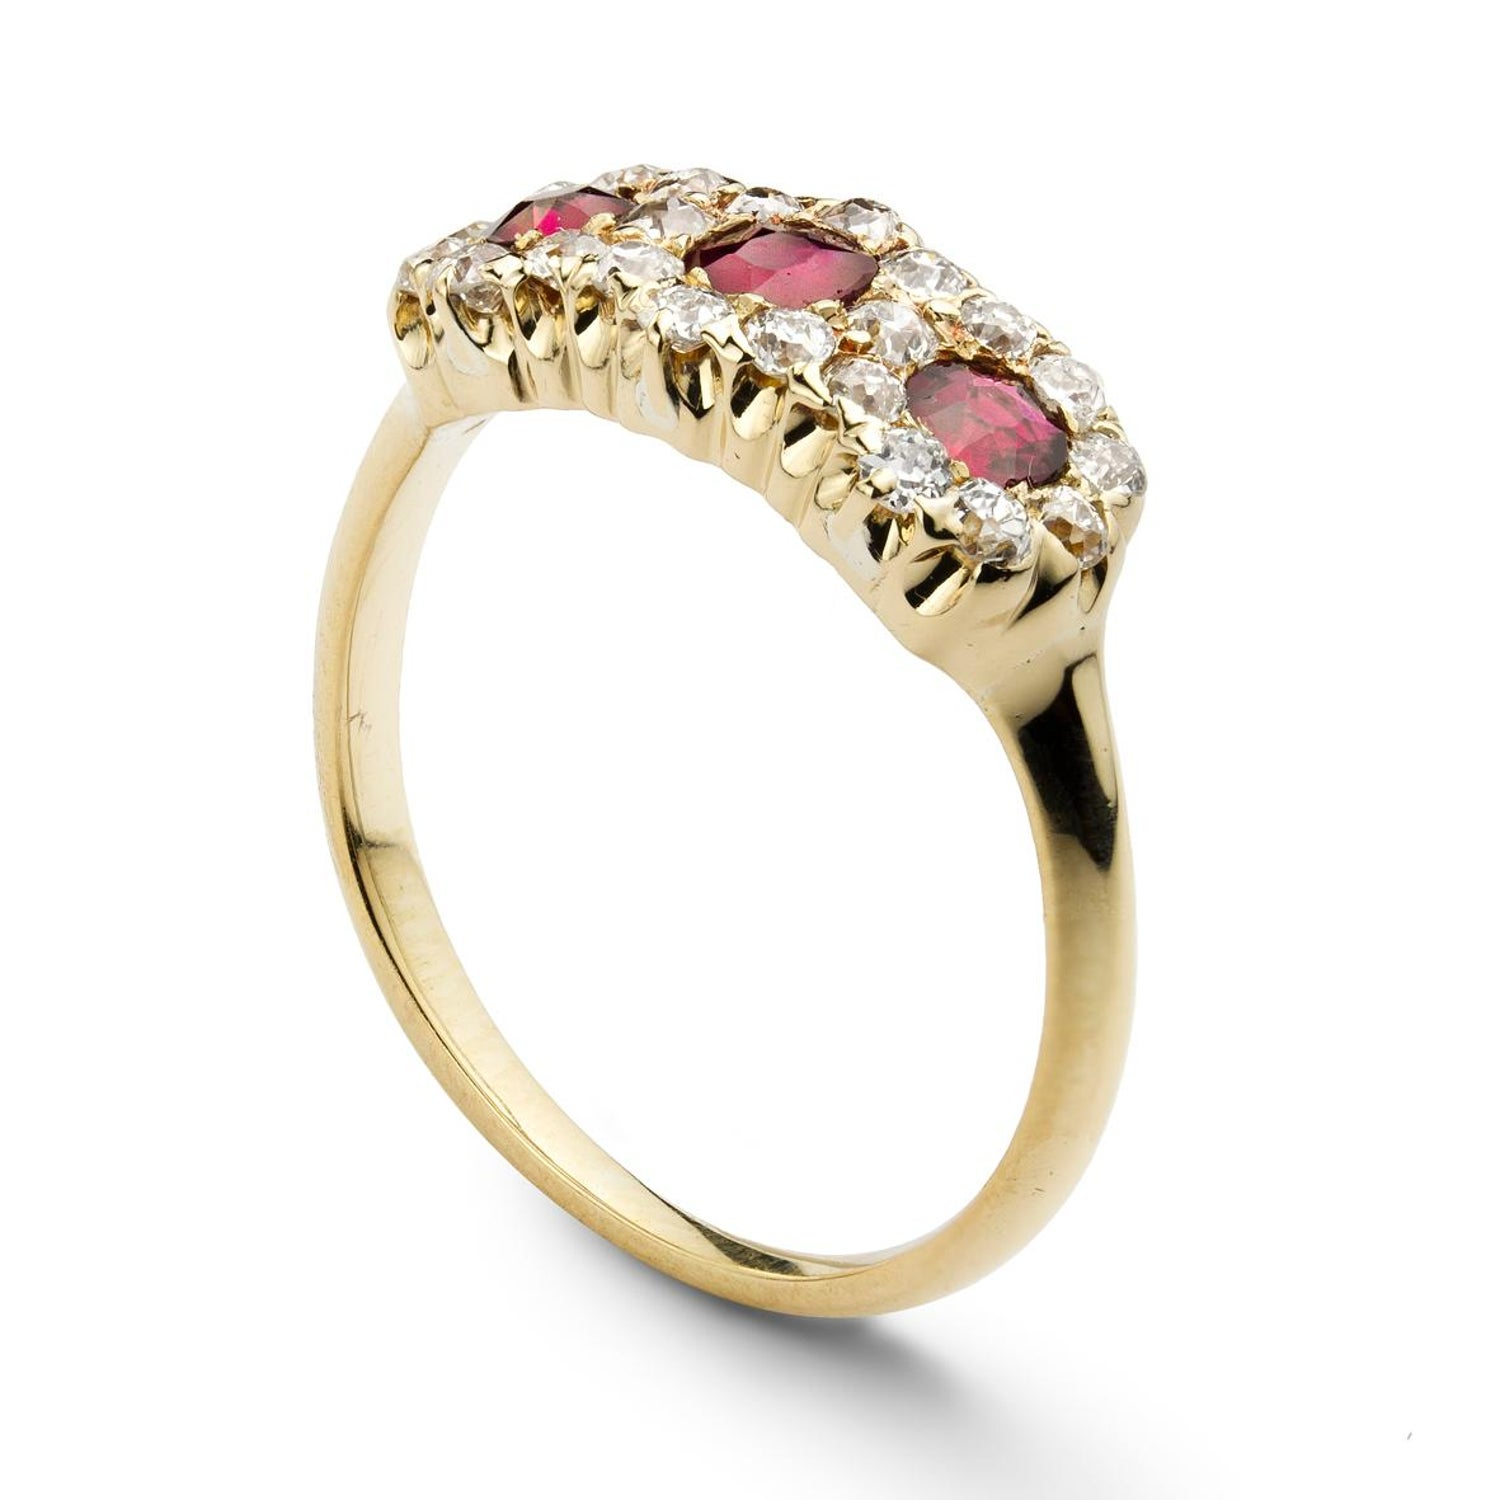 e68cbfef6 Tiffany and Co. Ruby and Diamond Triple Cluster Ring For Sale at 1stdibs